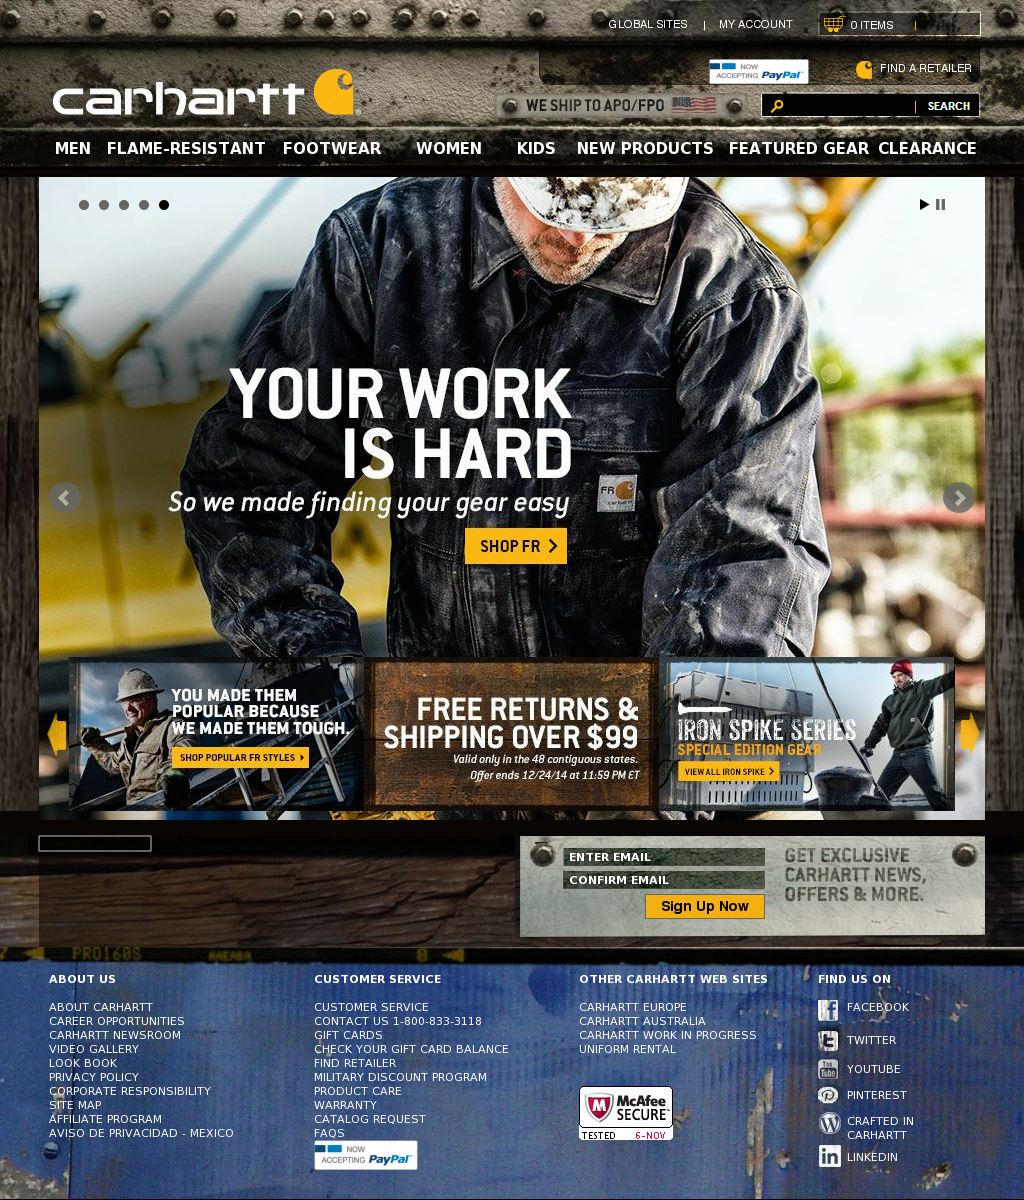 6397d43b122 Carhartt Competitors, Revenue and Employees - Owler Company Profile